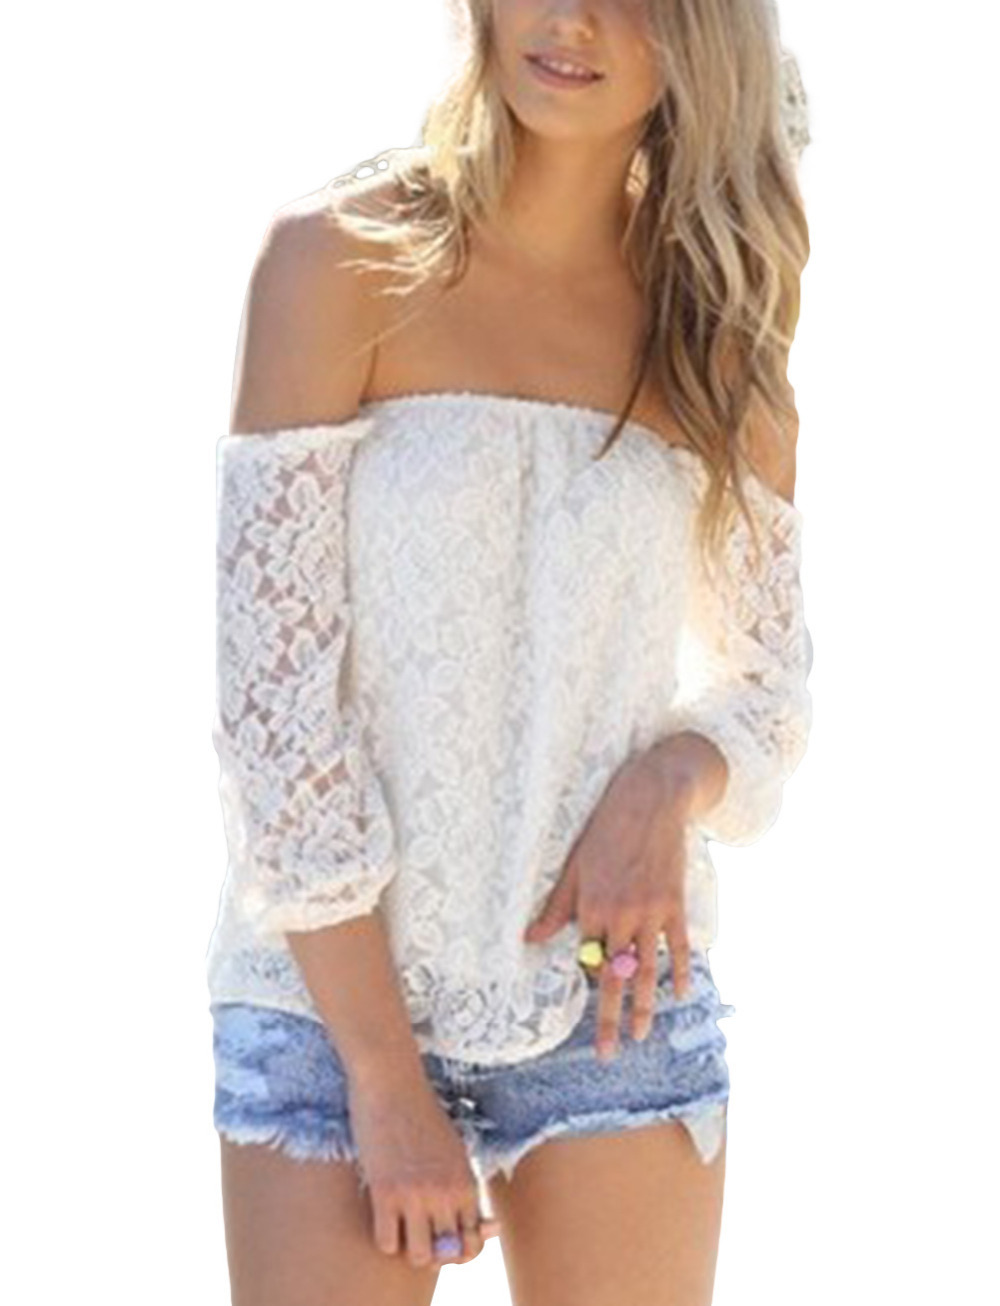 Free Shipping Hot 2014 MS Womens Sexy Off Shoulder Long Sleeve Blouses Ladies Nightclub Top White Lace Strapless Backless Shirts-in Blouses & Shirts from Apparel & Accessories on Aliexpress.com